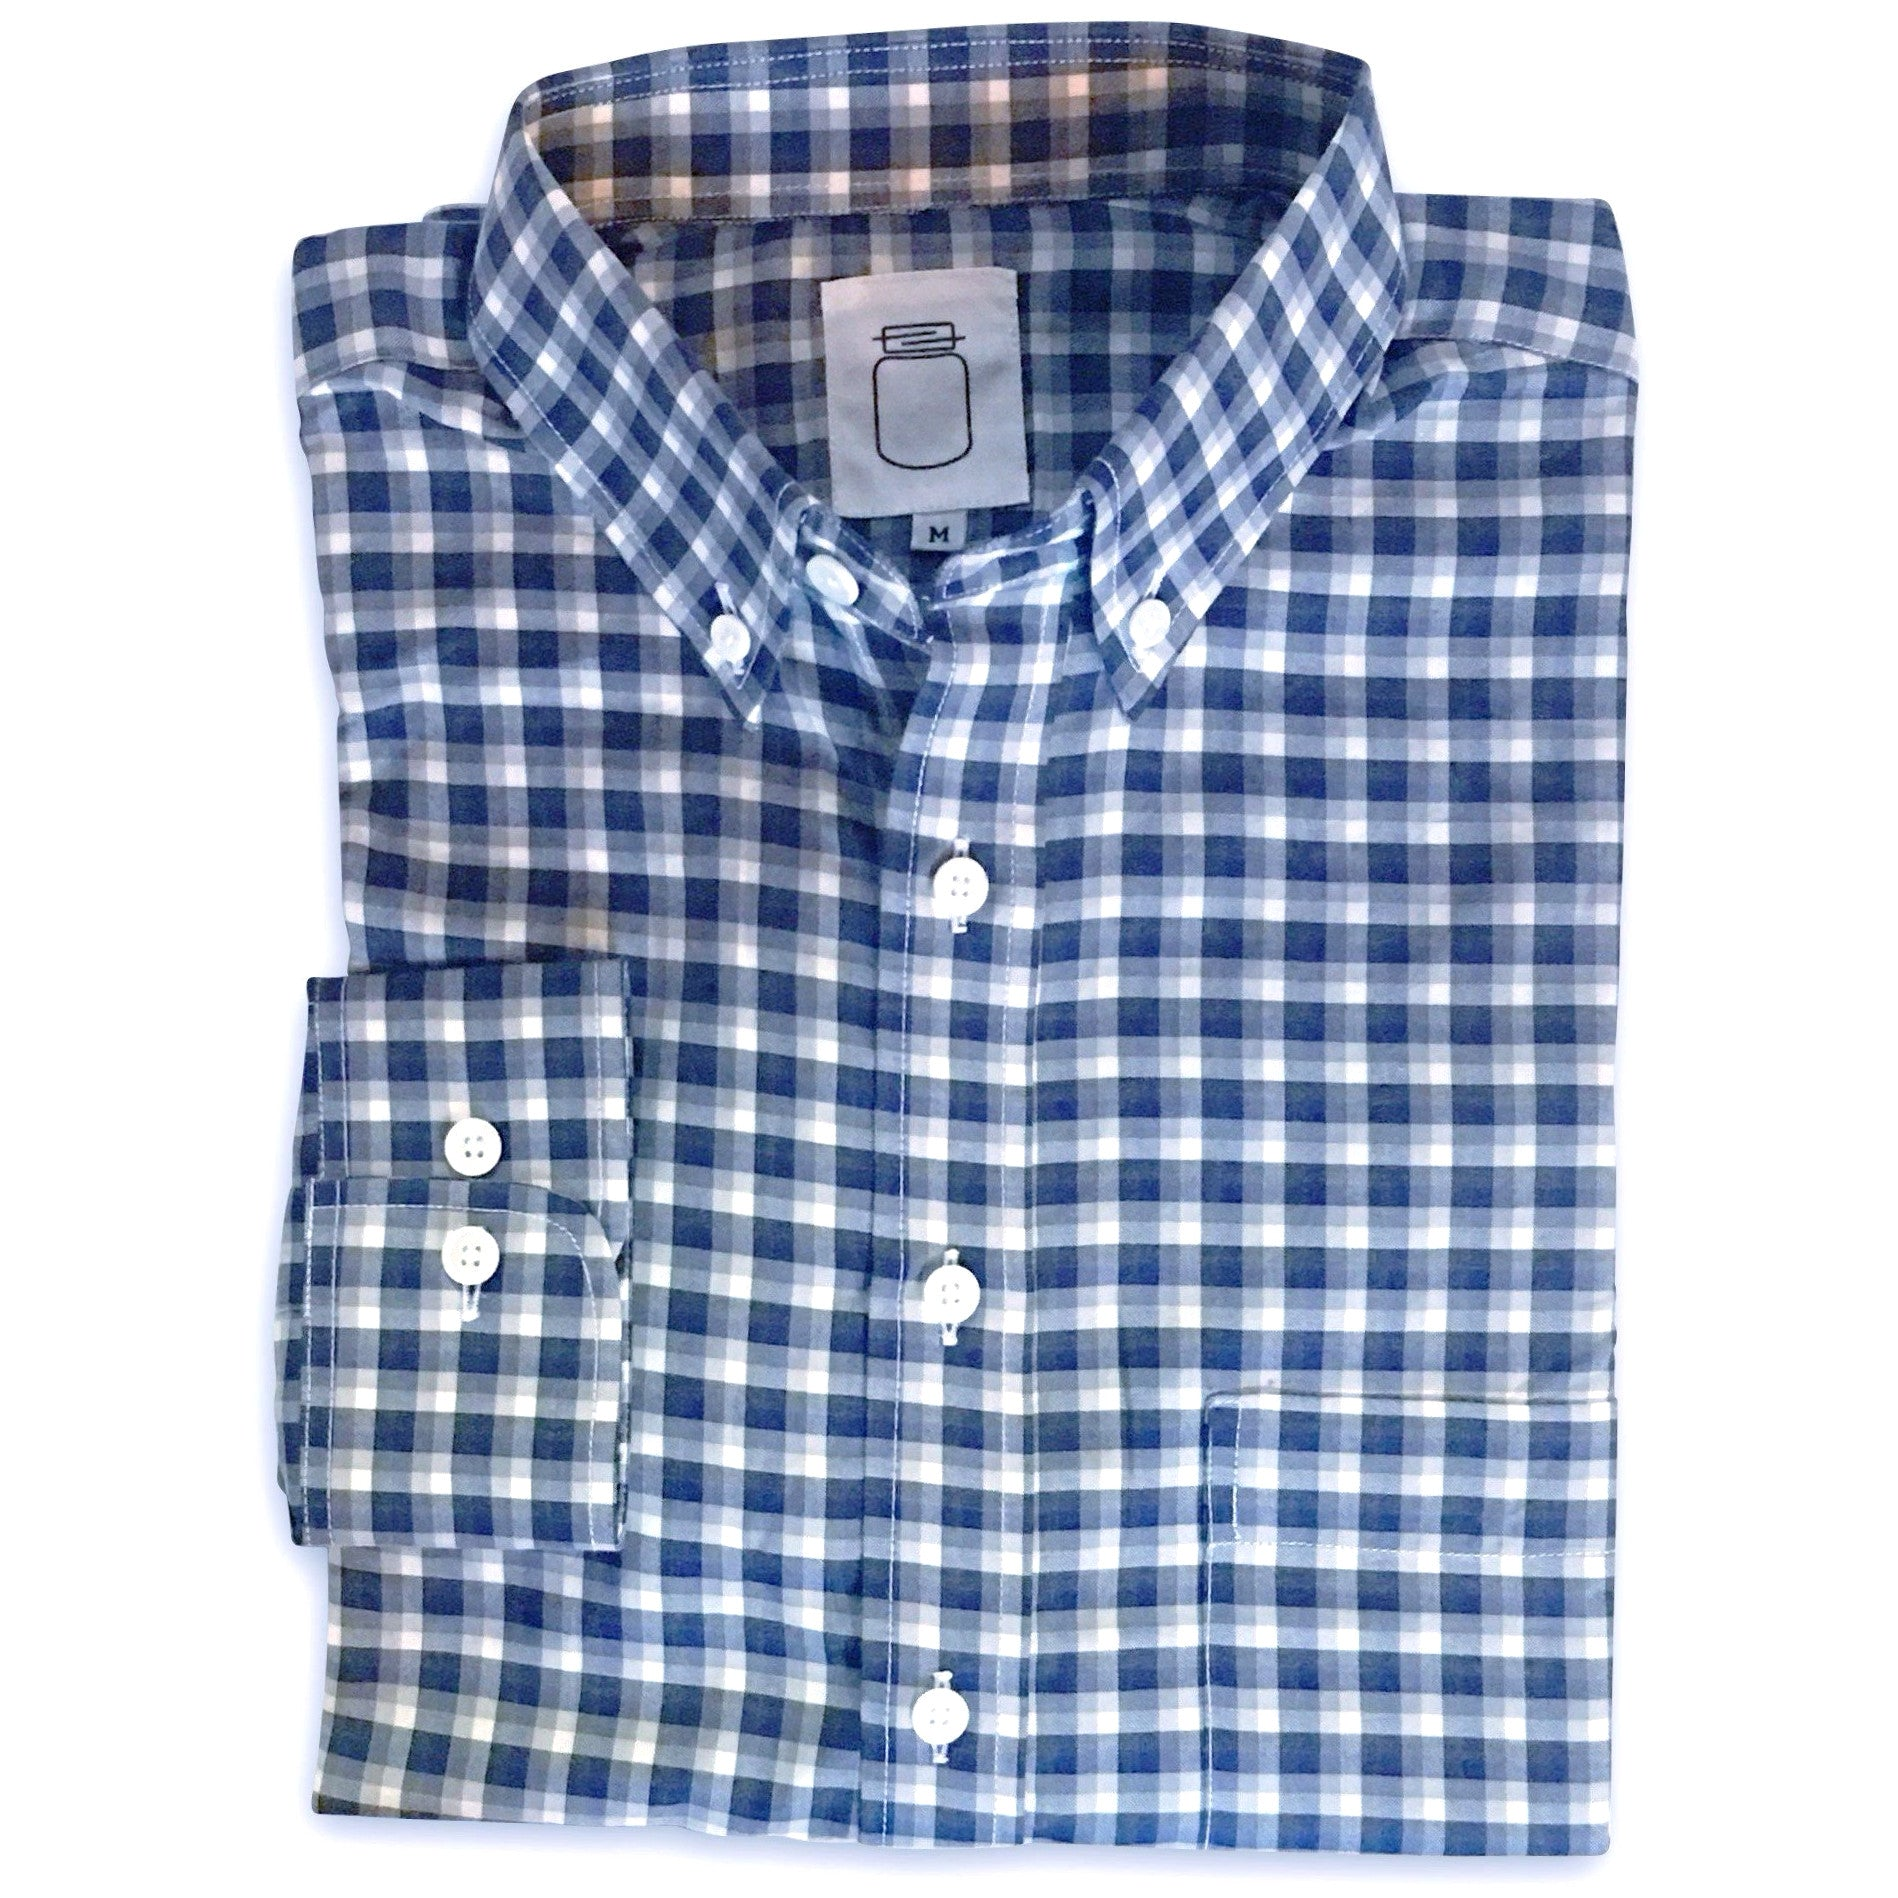 The Blue and Grey Plaid Brushed Cotton